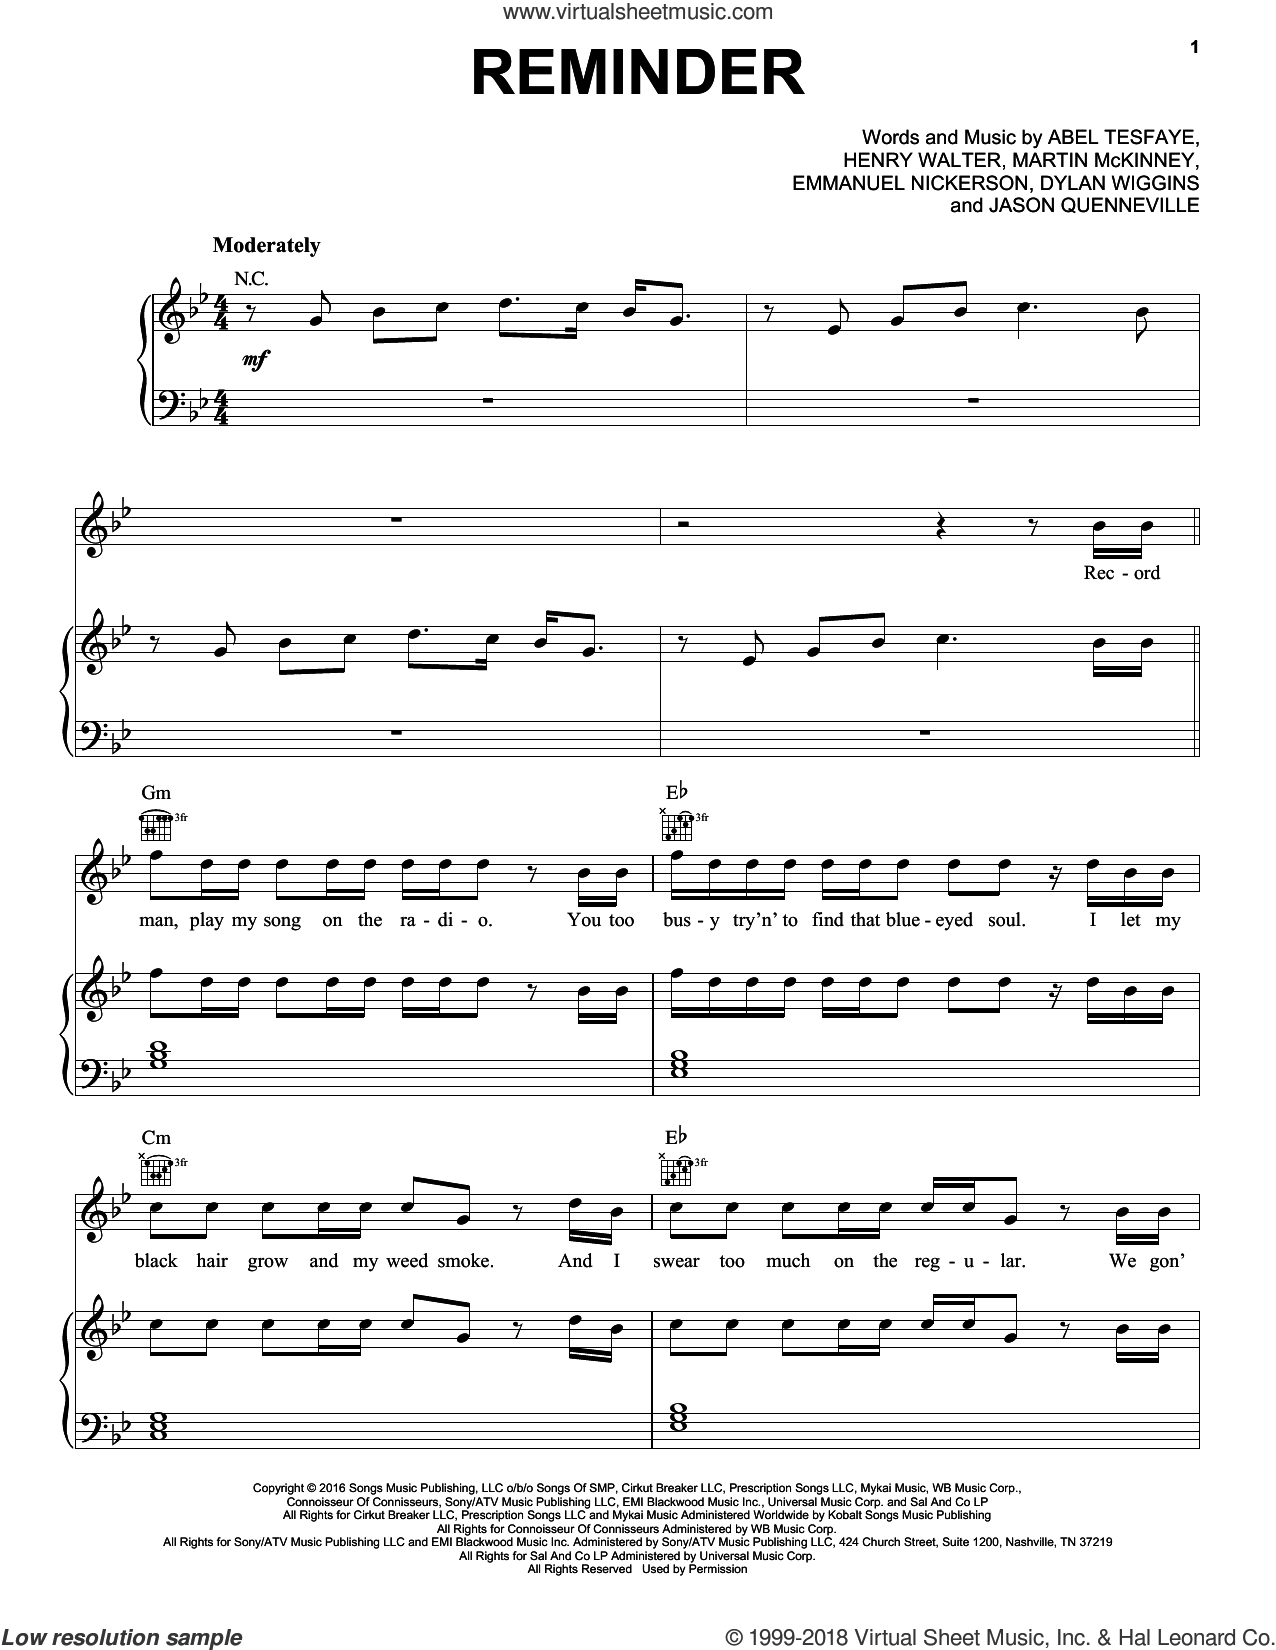 Reminder sheet music for voice, piano or guitar by The Weeknd, Abel Tesfaye, Dylan Wiggins, Emmanuel Nickerson, Henry Walter, Jason Quenneville and Martin McKinney, intermediate skill level